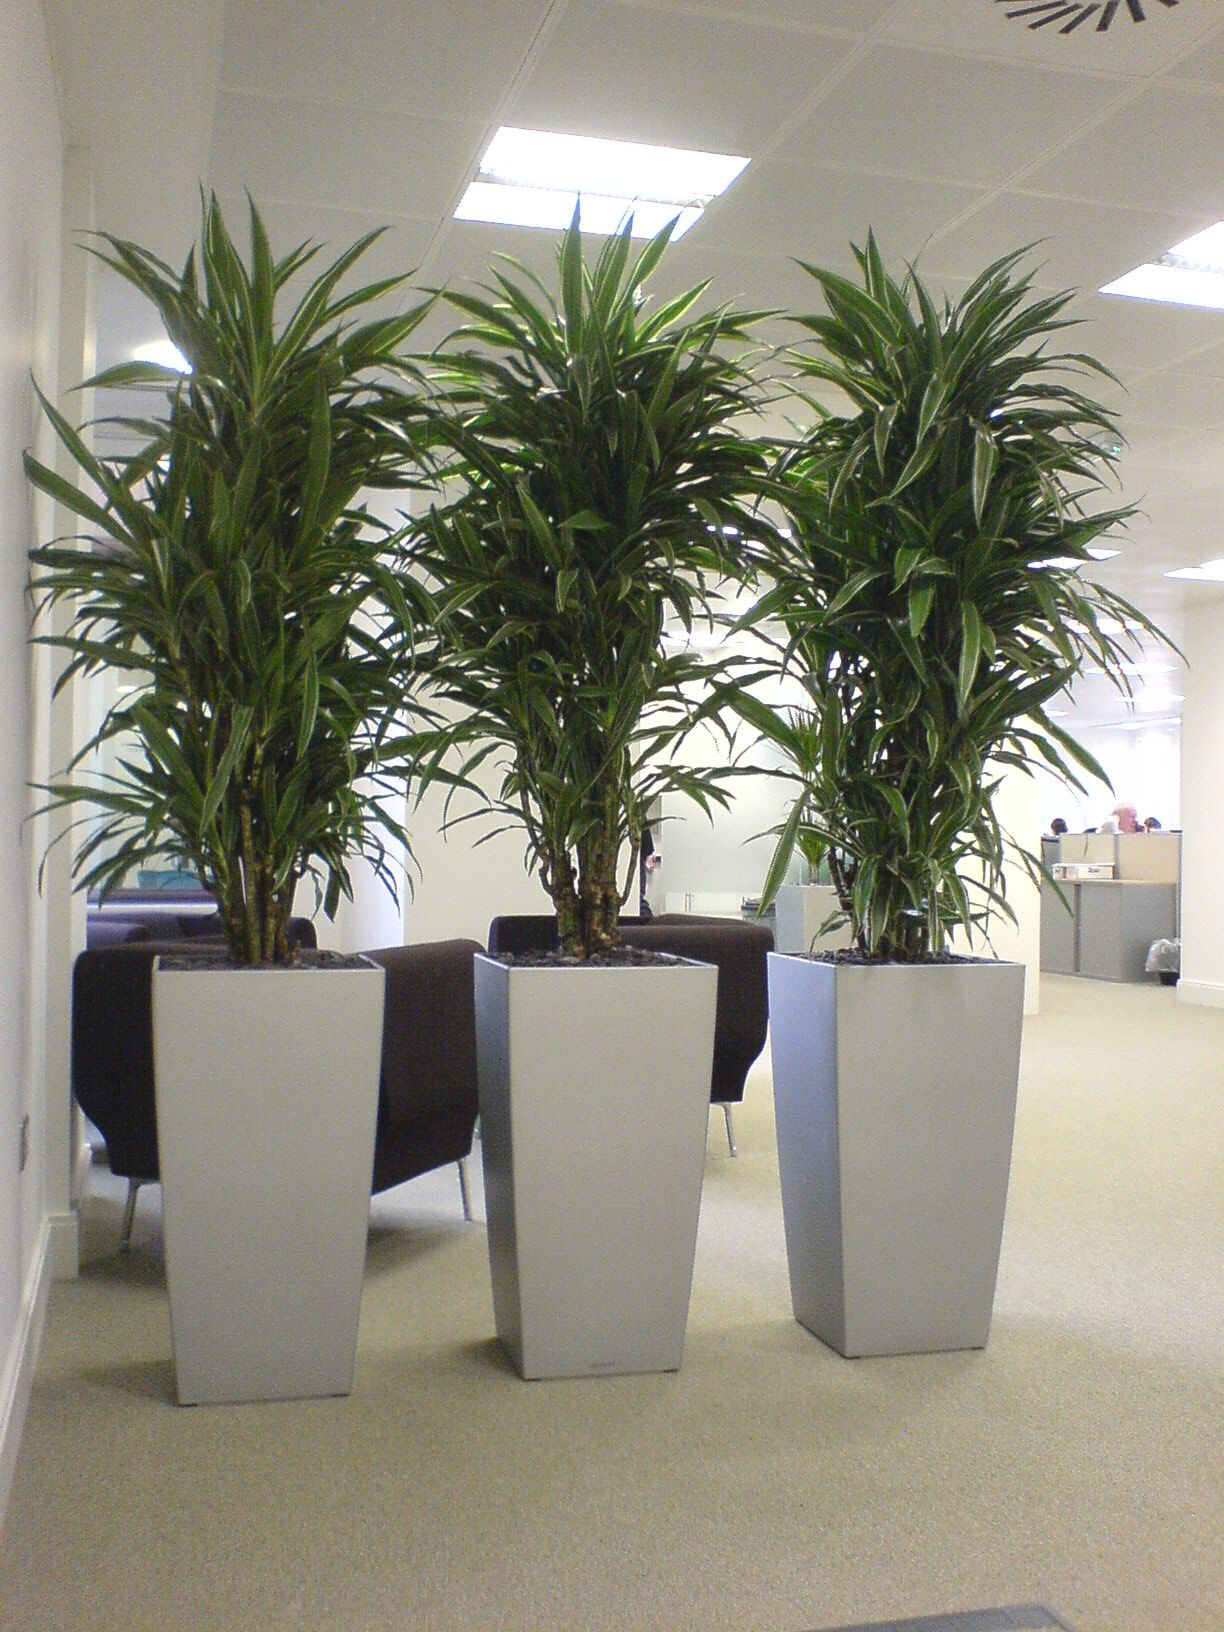 dracaena warneckii used as a screen in very practical planters